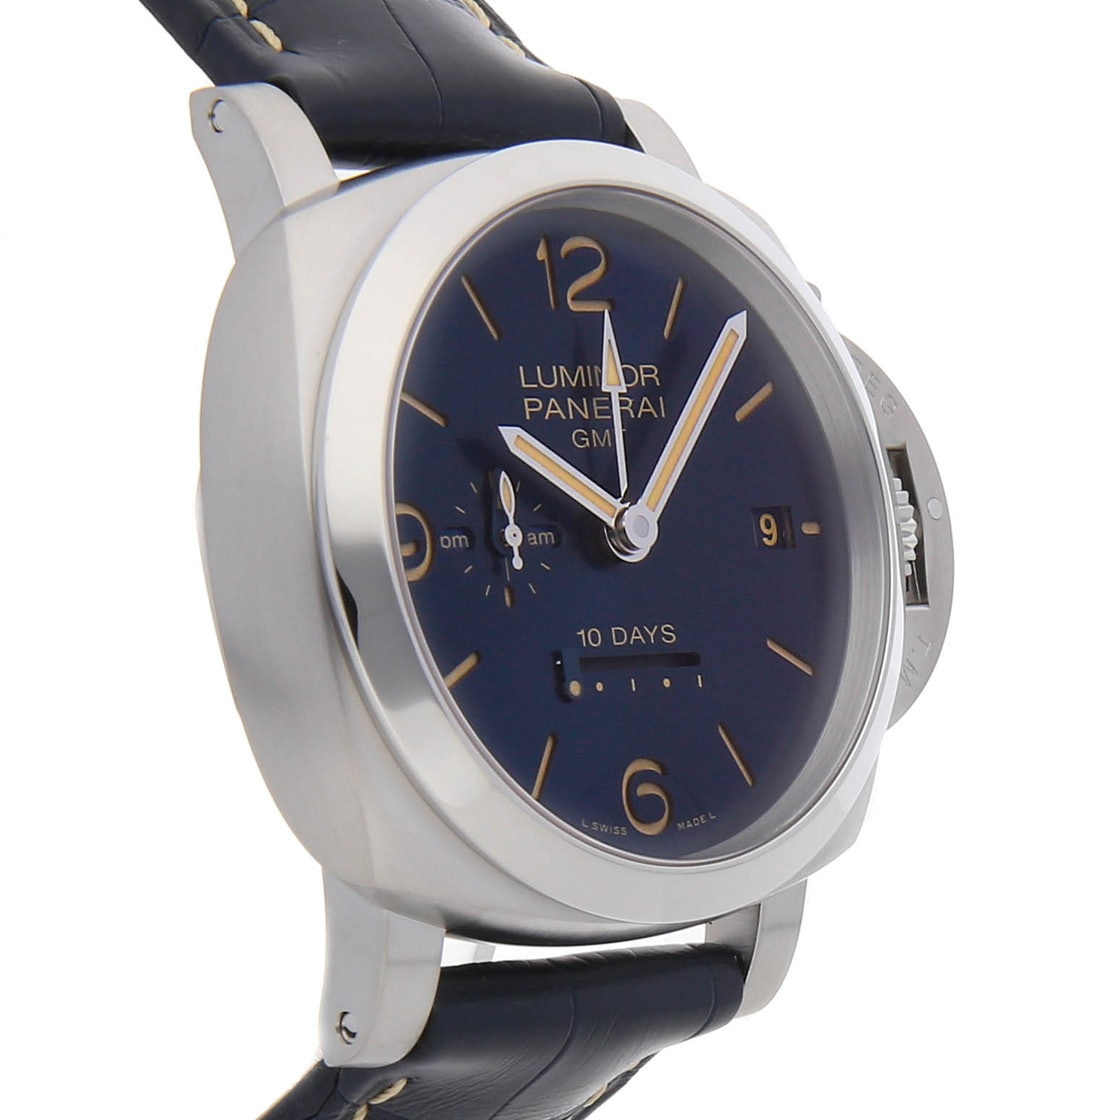 "Panerai Luminor 1950 10-Days GMT ""Design Miami"" Limited Edition PAM 986"